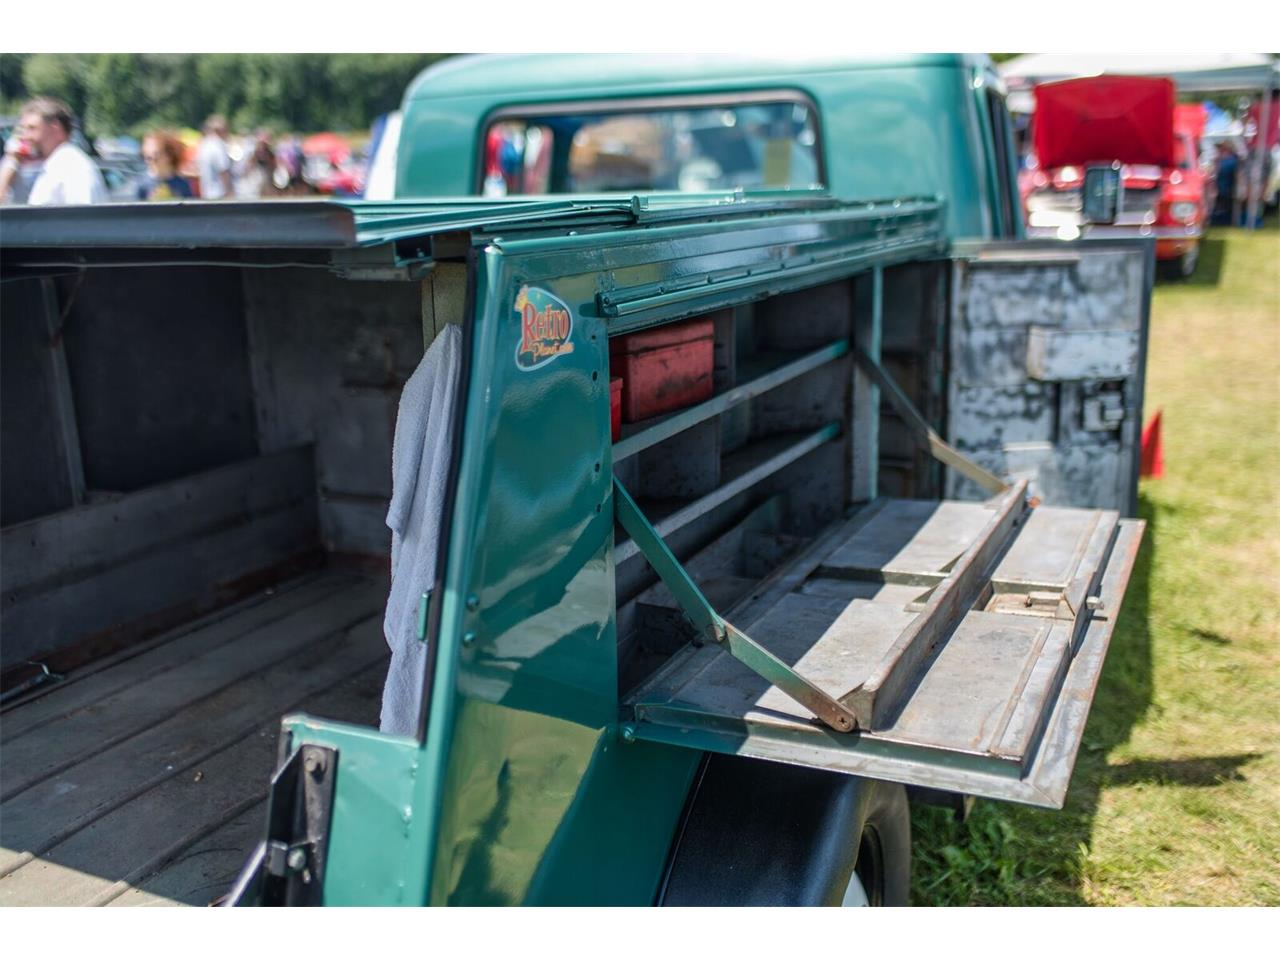 Large Picture of '56 Dodge C-3 located in Wautoma Wisconsin - $9,000.00 Offered by a Private Seller - LERZ